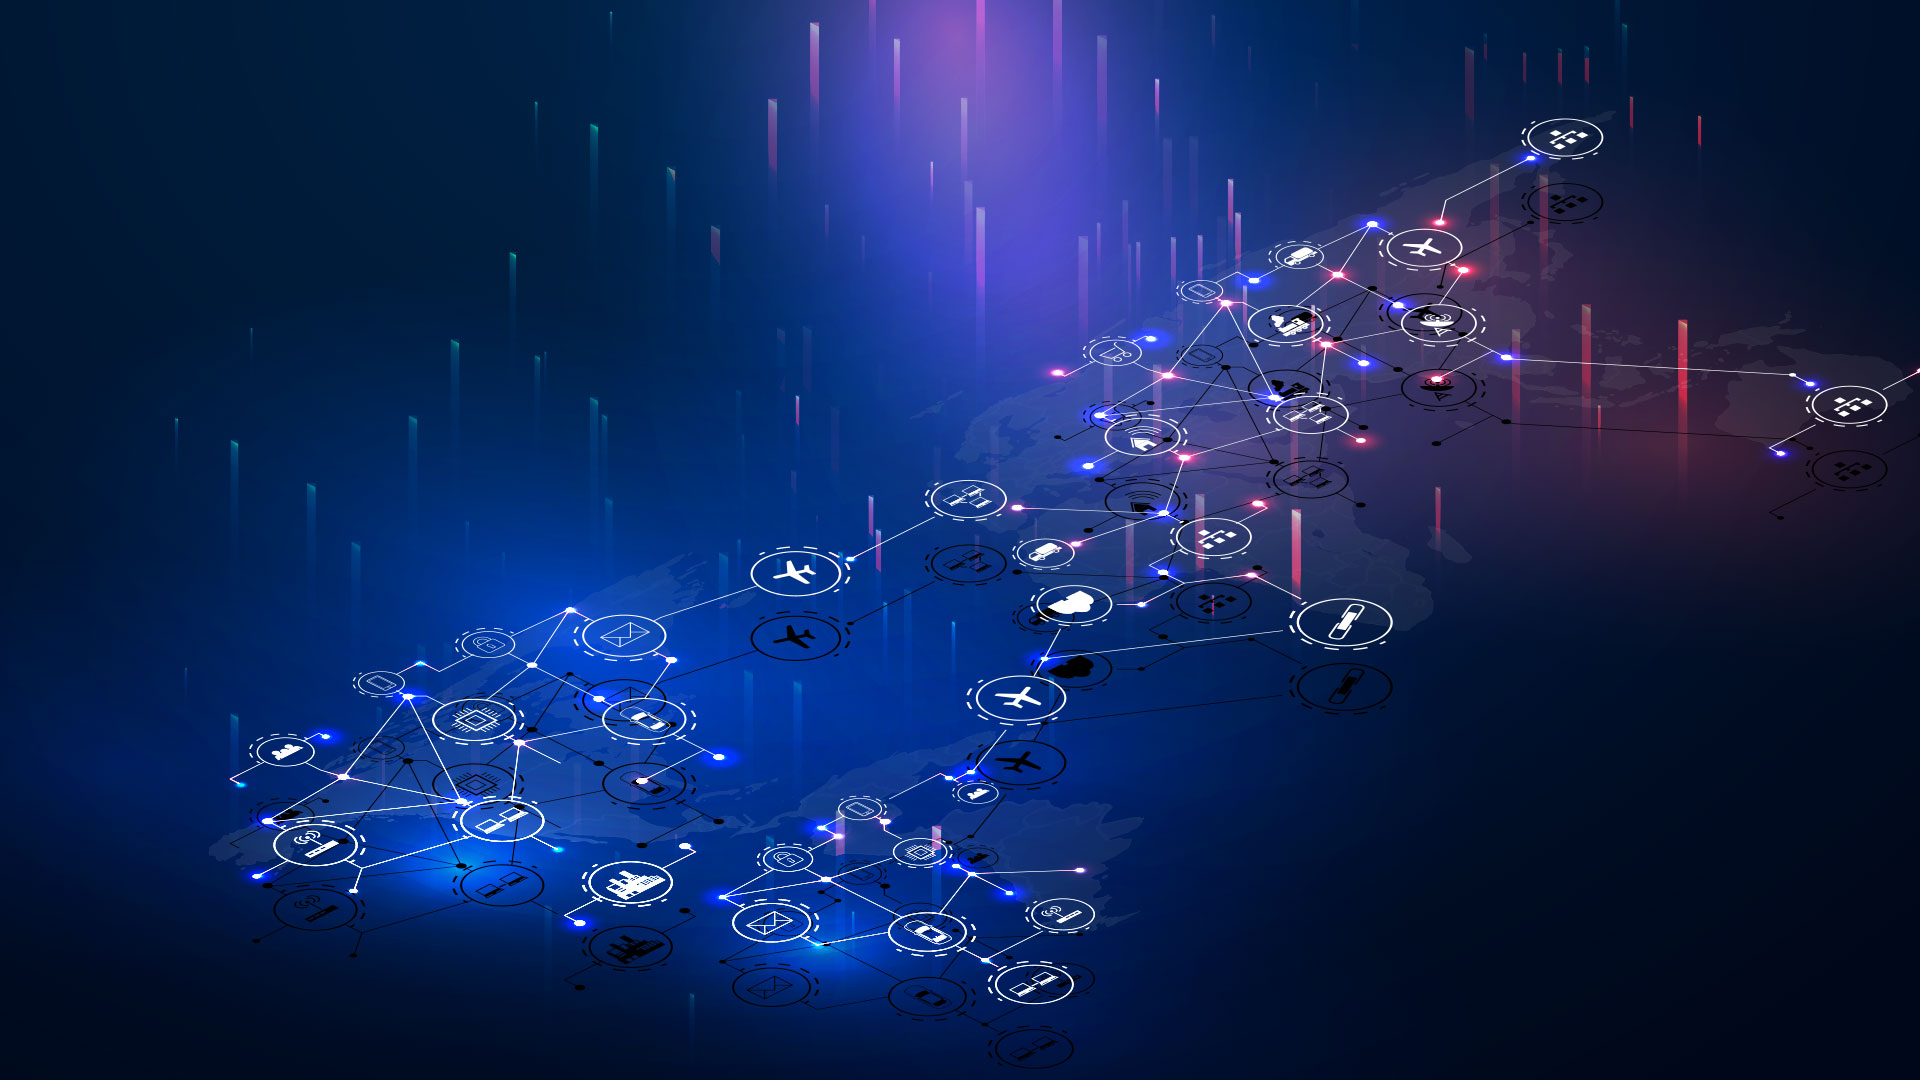 supply-chain-network-applications-multi-party-networks-5